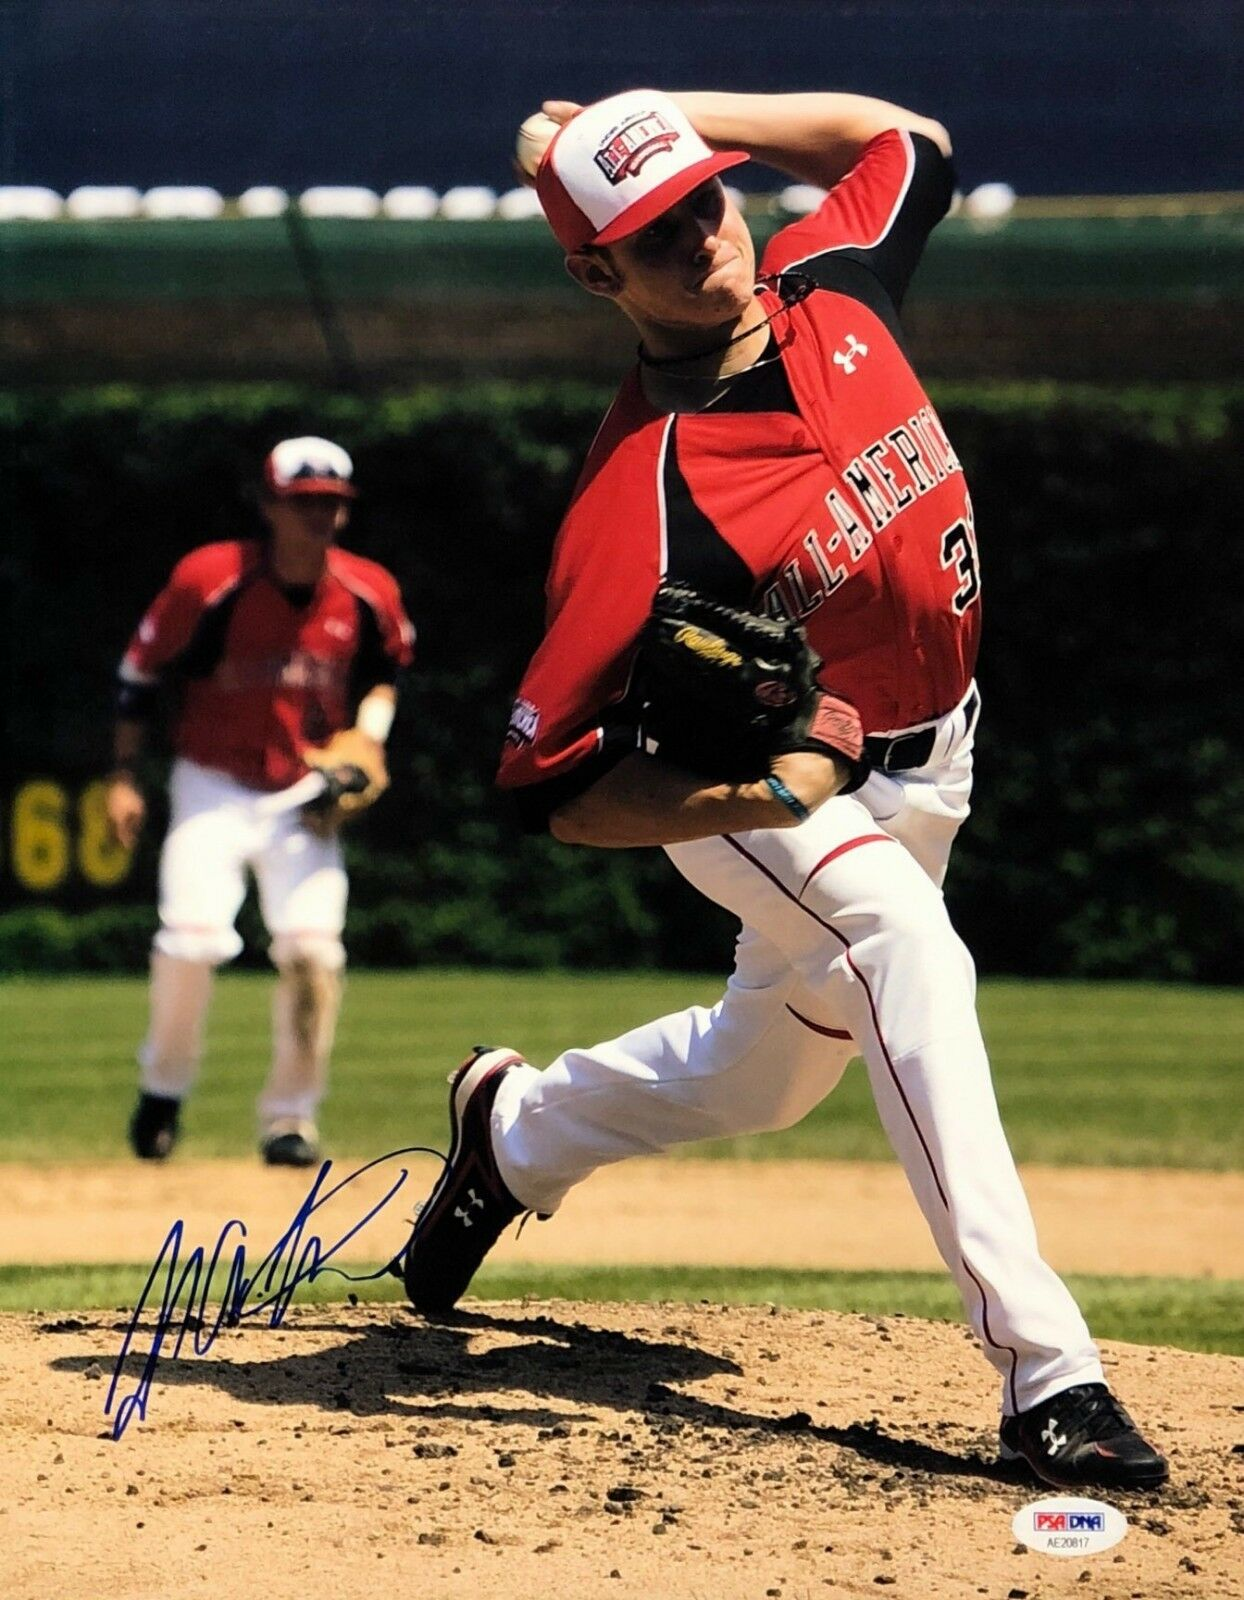 Tyler Matzek Signed Baseball 11x14 Photo *All American *Rockies PSA AE20817